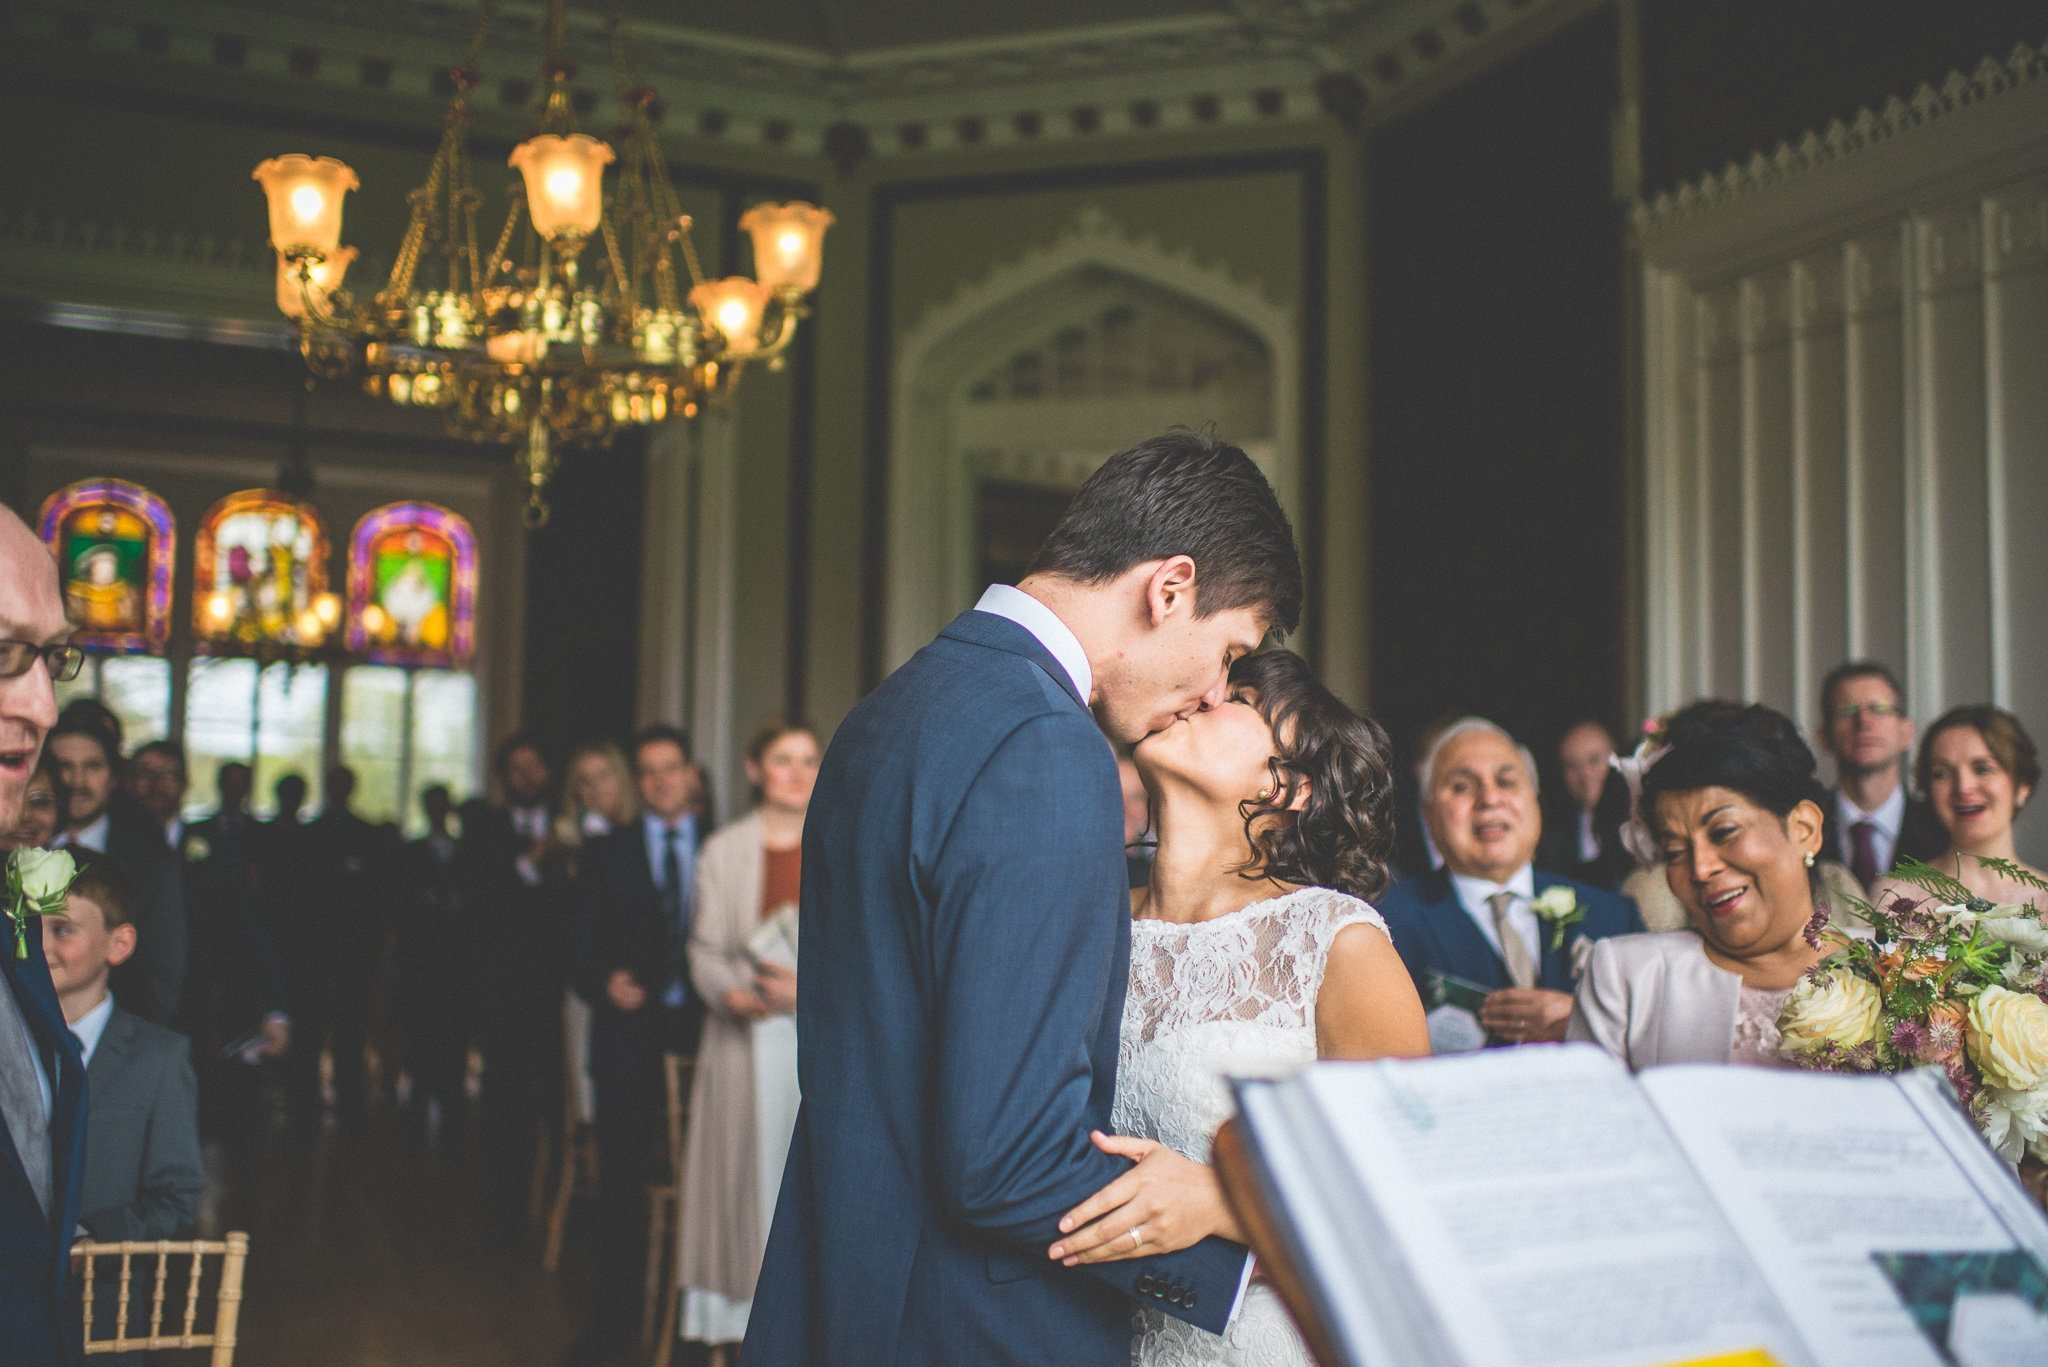 The newlyweds kiss as they are pronounced husband and wife.